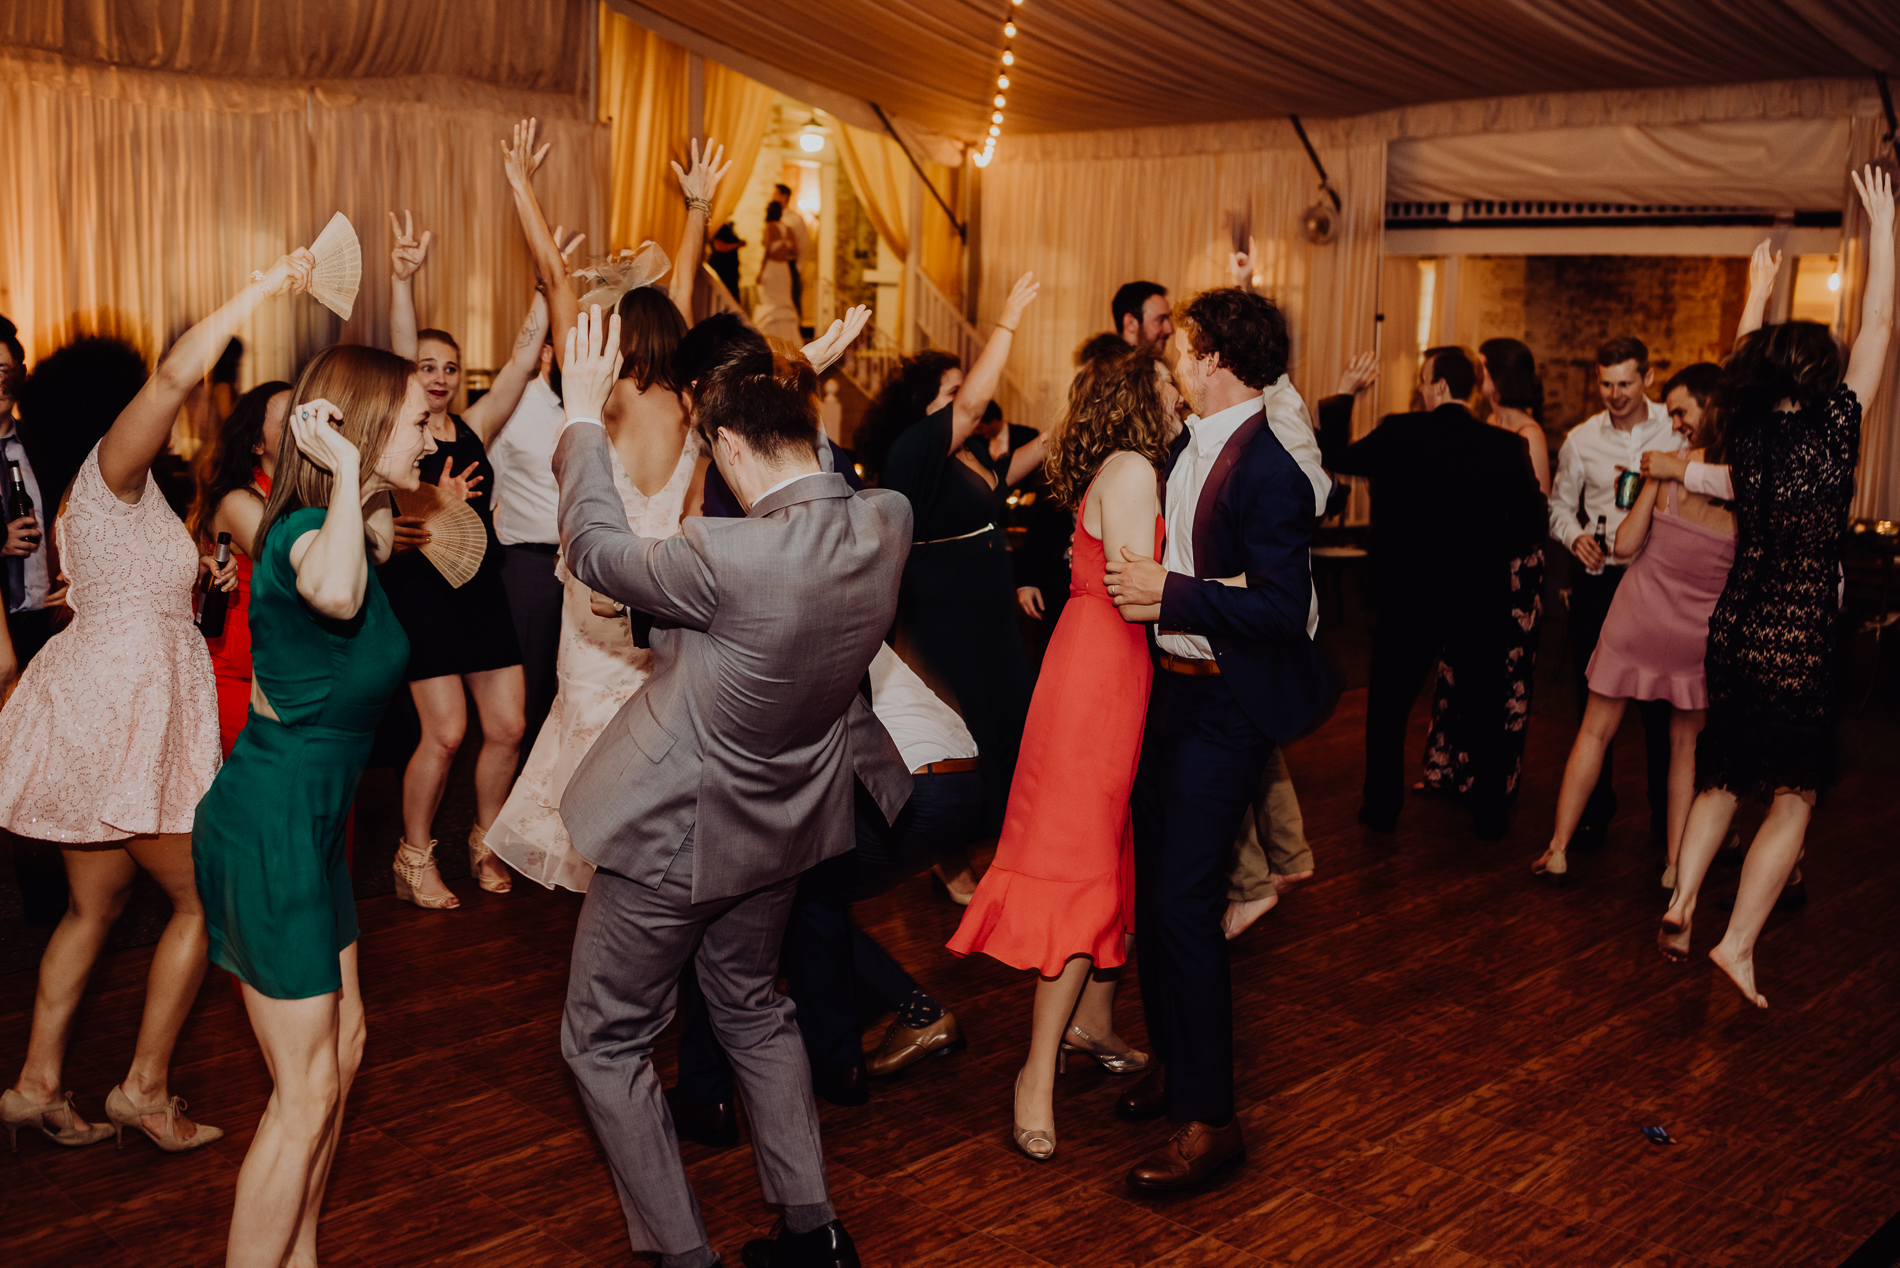 gabi and campbell east nashville wedding at riverwood mansion by wilde company-59.jpg